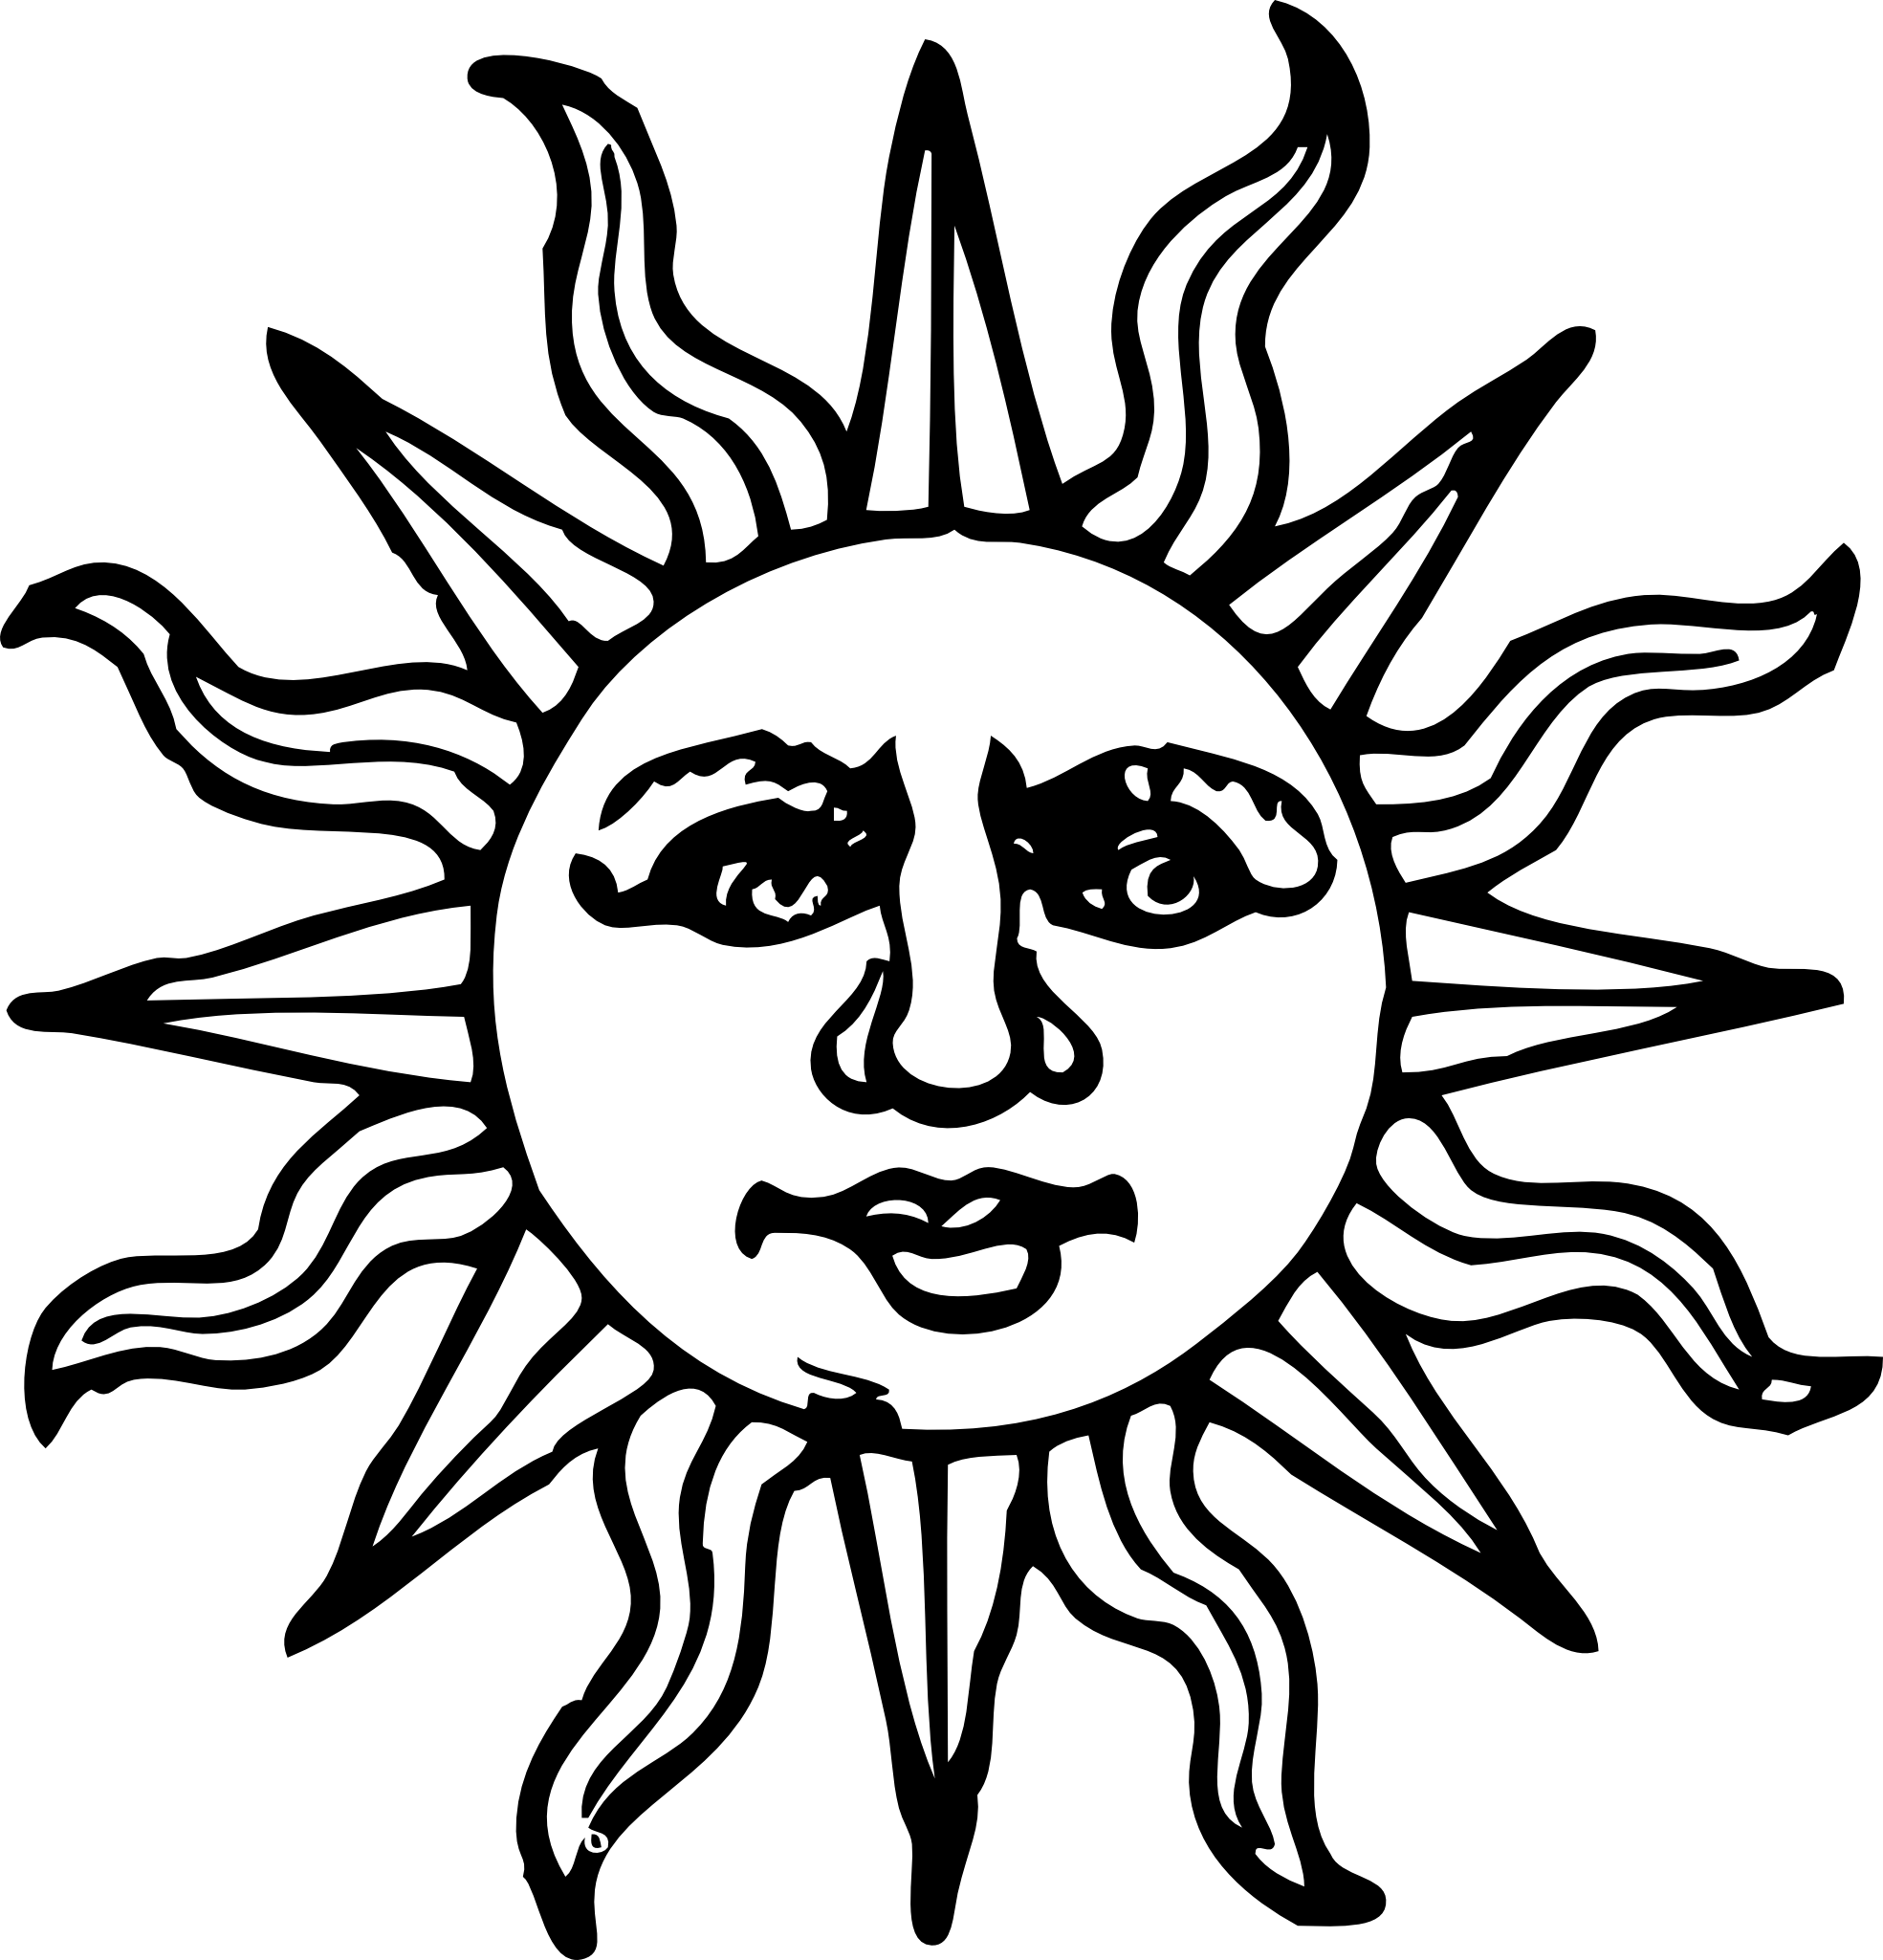 Earth sun and moon clipart black and white graphic black and white Sun Drawing Black And White at GetDrawings.com | Free for personal ... graphic black and white